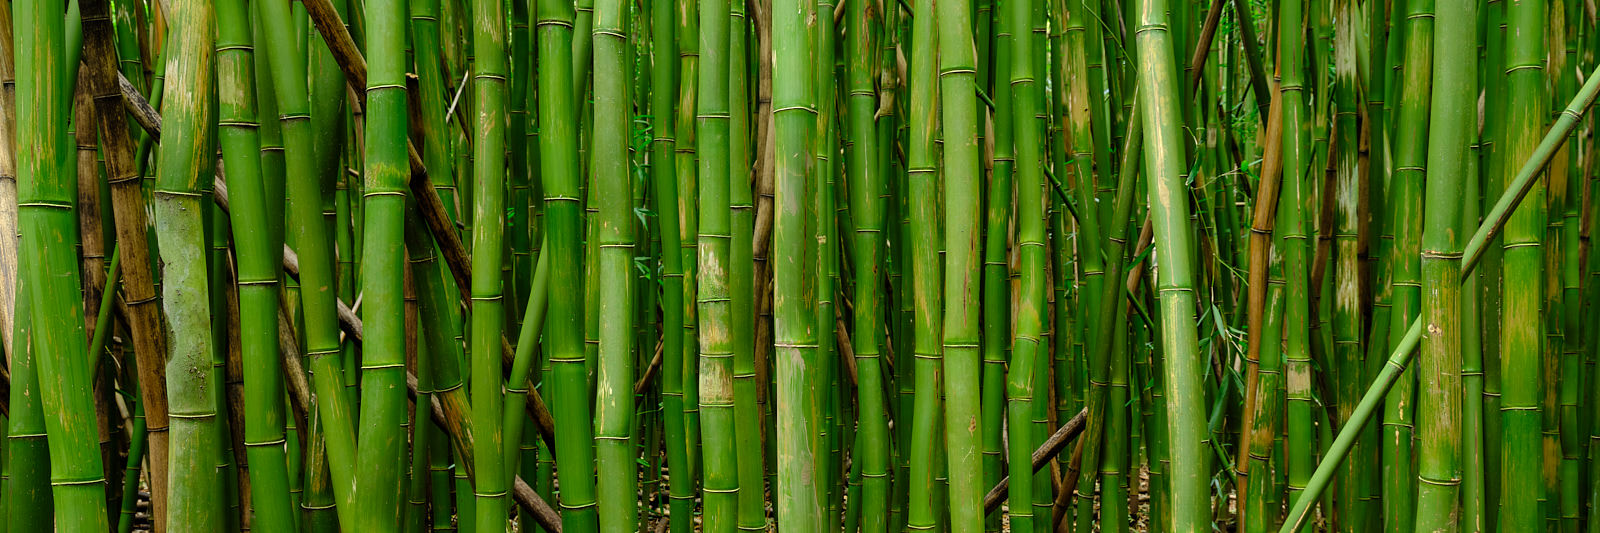 panorama of a bamboo grove near Hana on the island of Maui located in Haleakala National Park along the the Pipiwai Trail